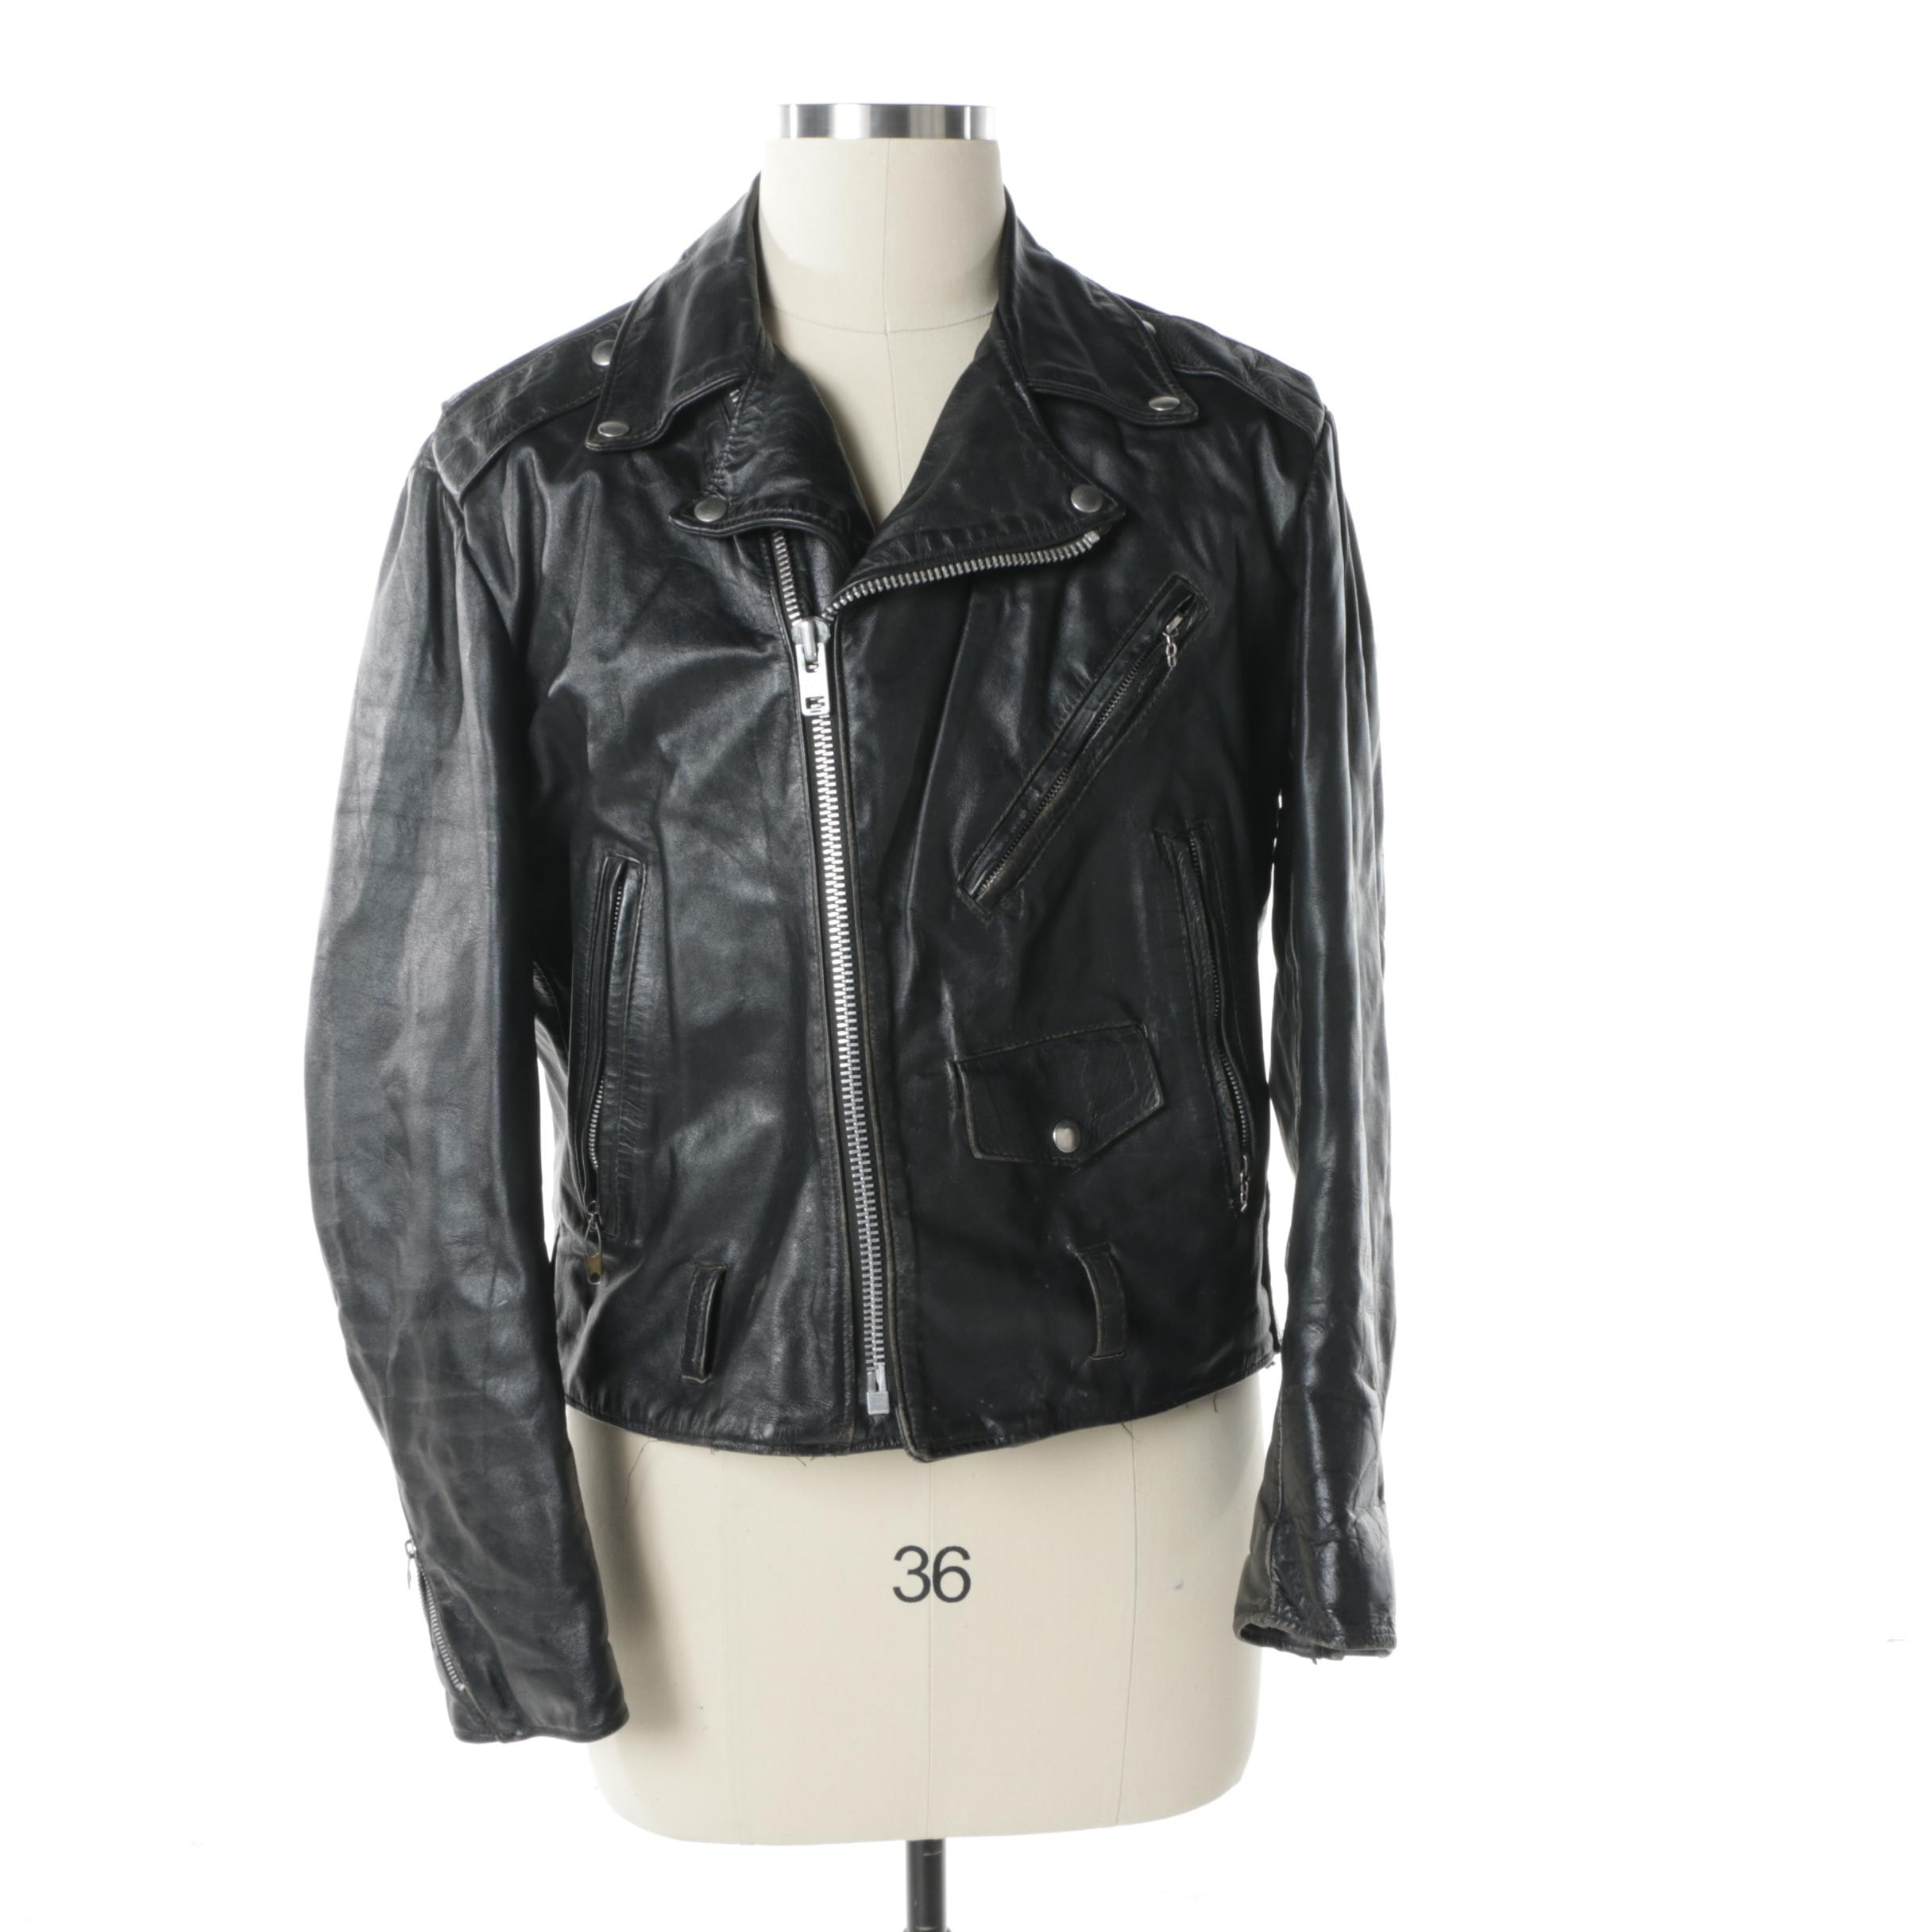 Men's Vintage The Leather Shop from Sears Black Leather Motorcycle Jacket